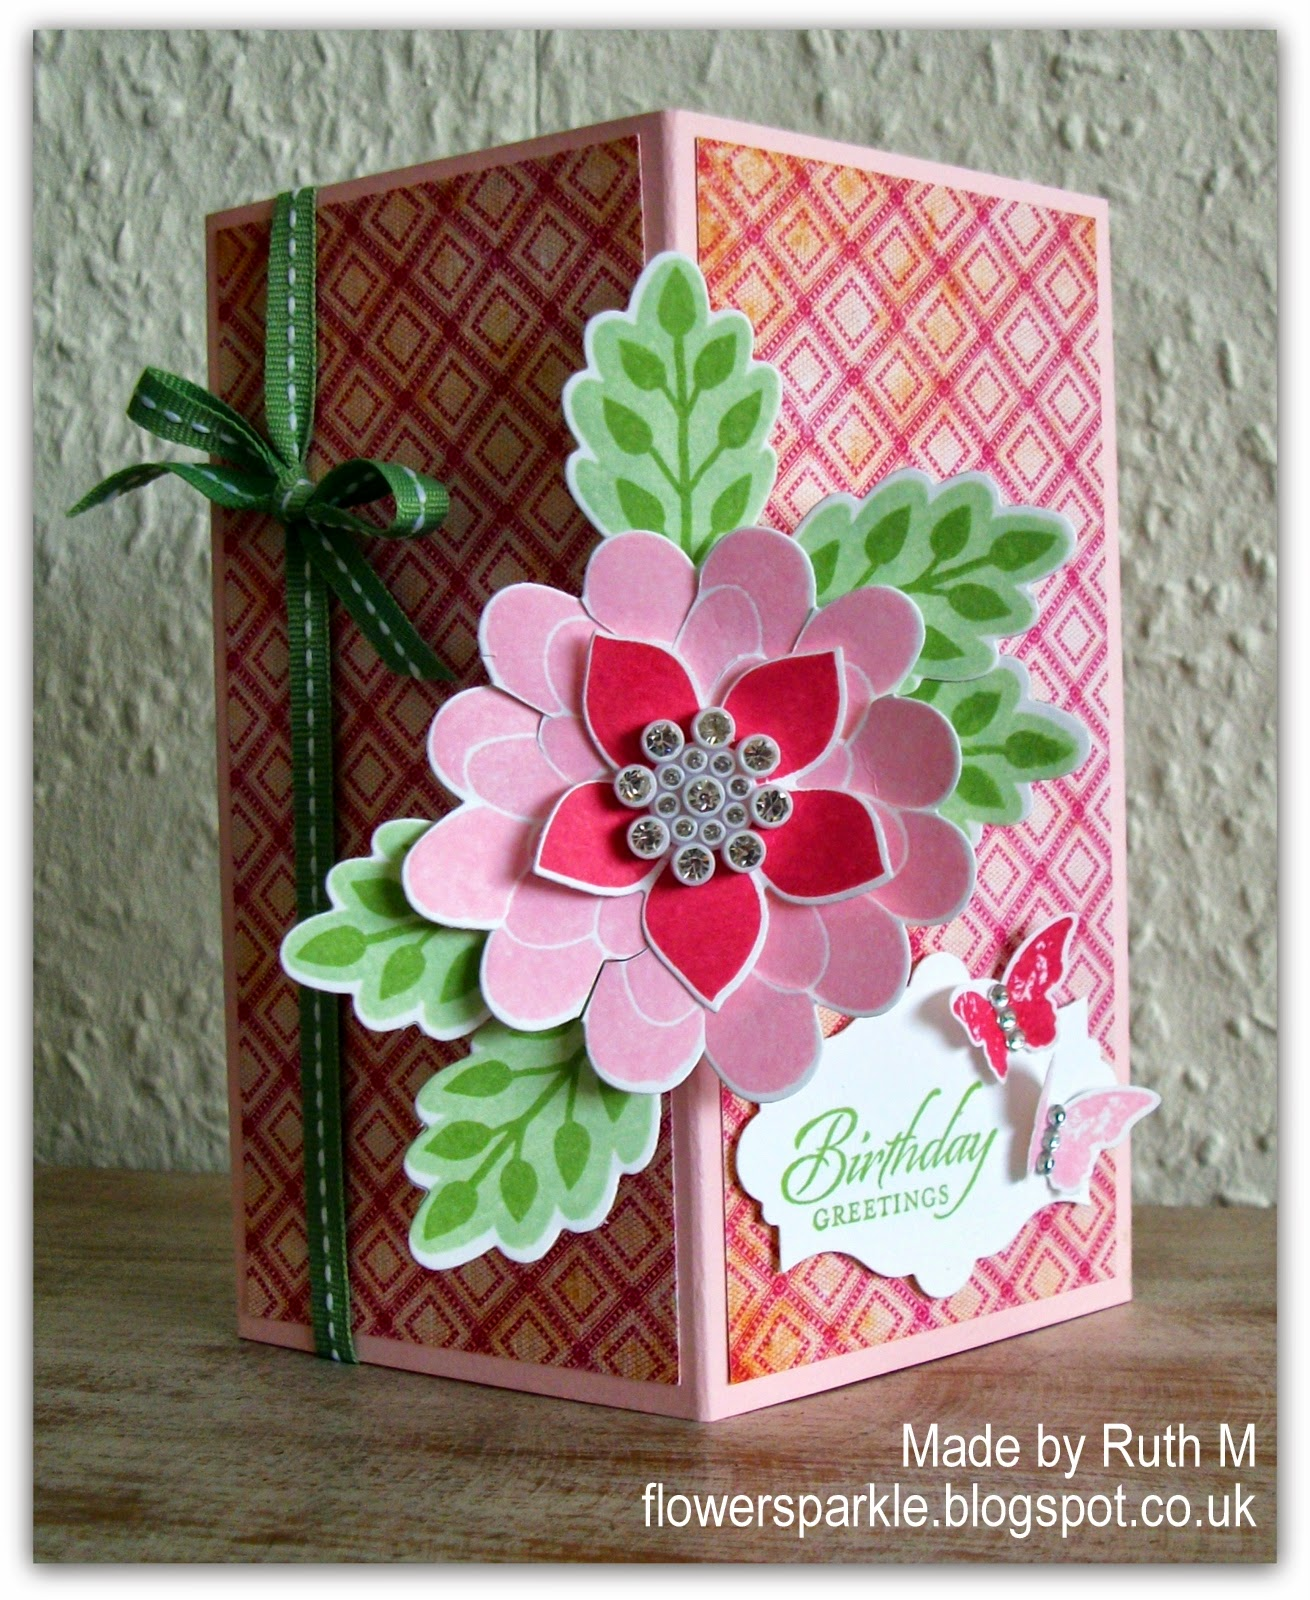 Flower Sparkle Floral Floating Front Birthday Greetings Card